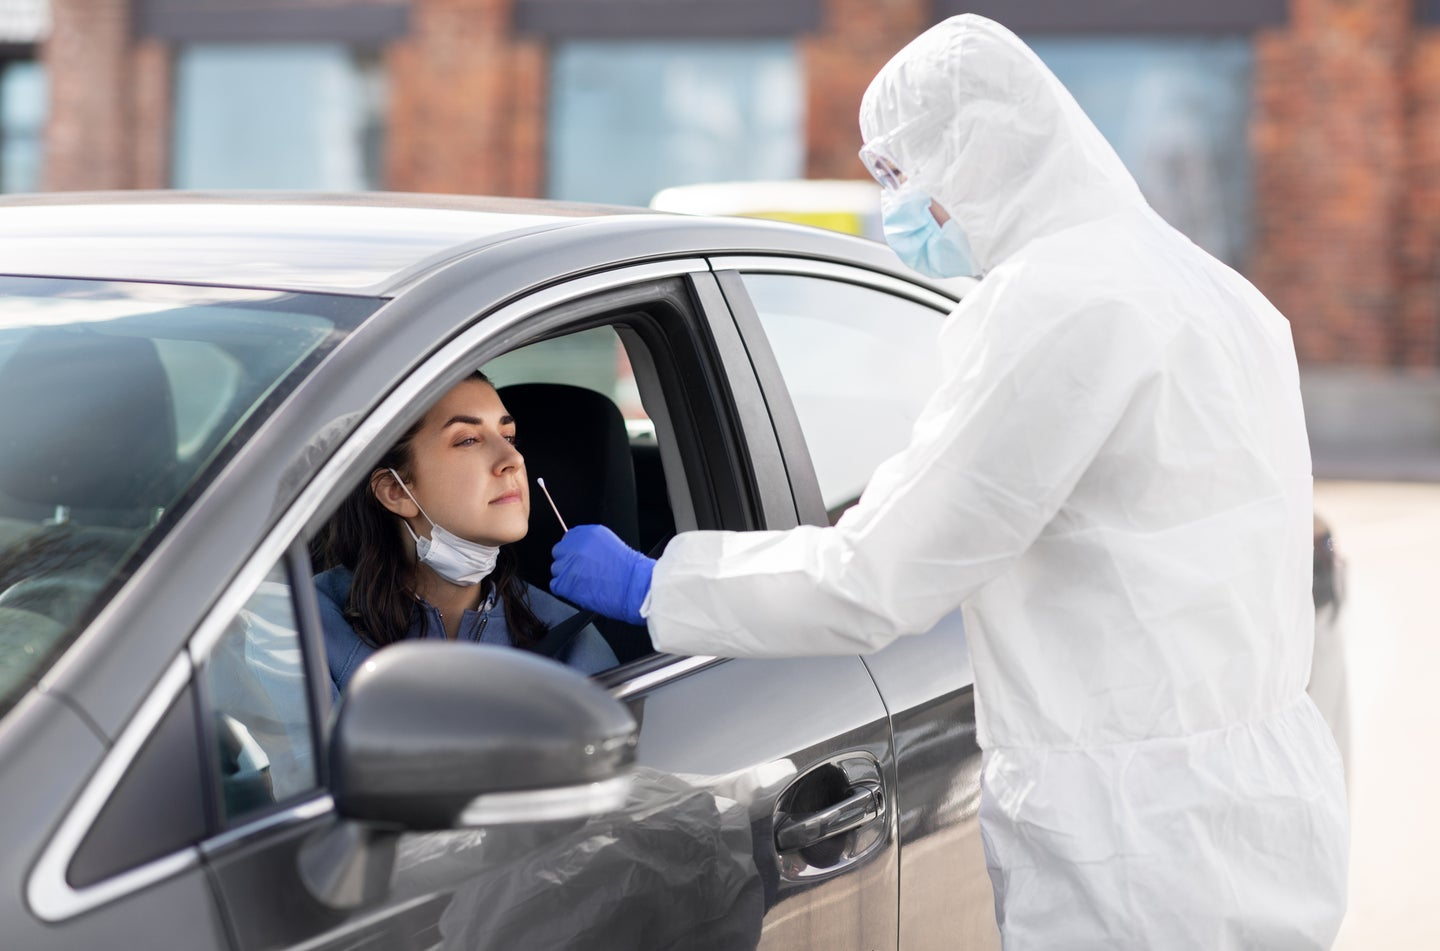 person in car gets covid nose swab test